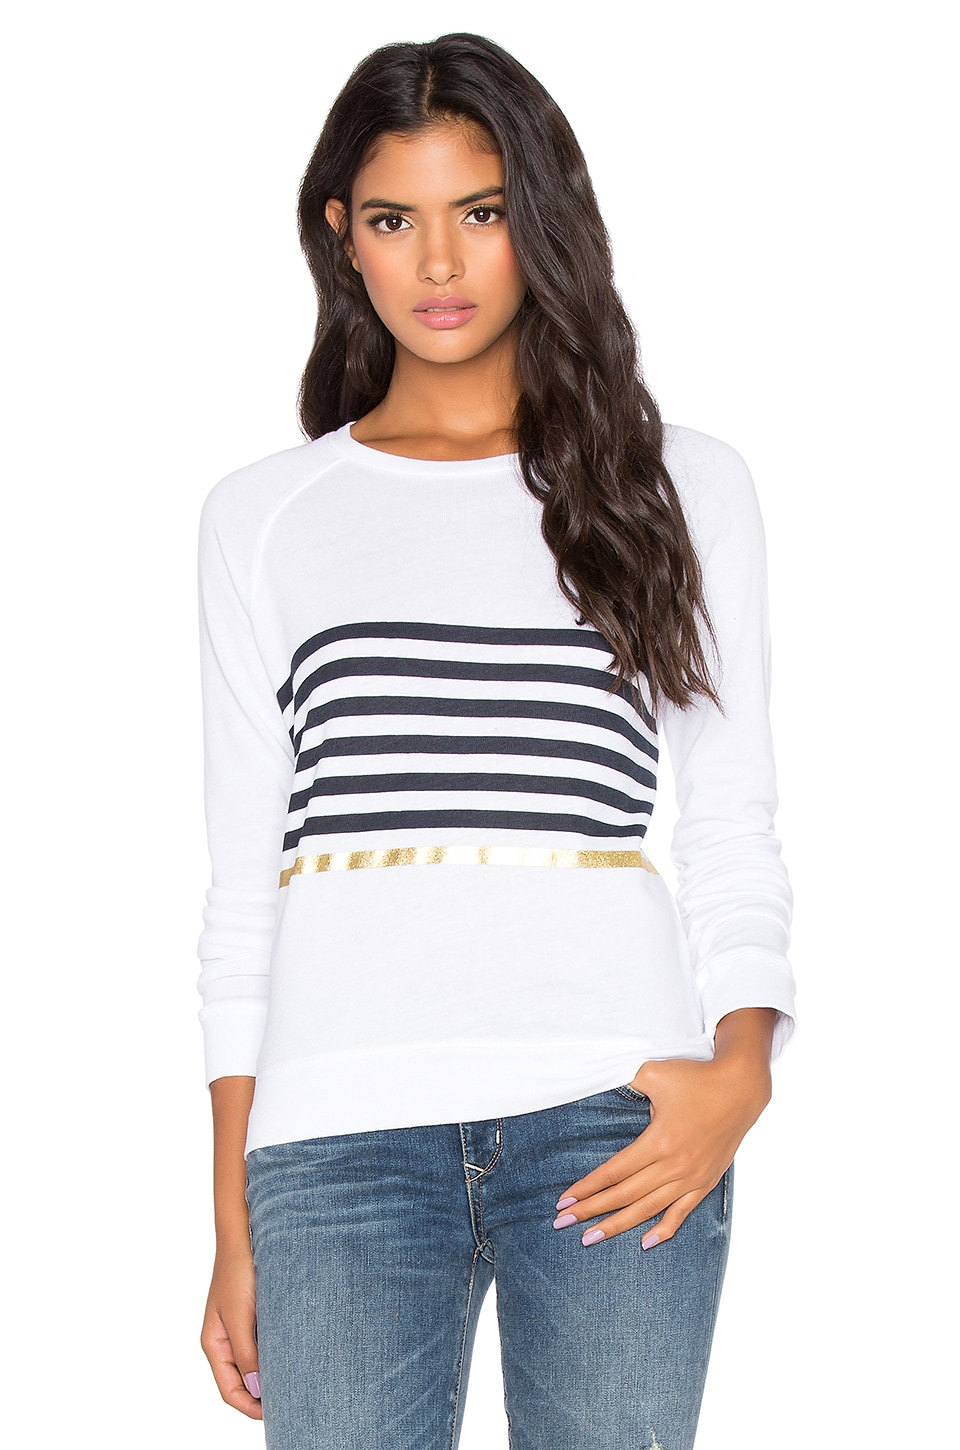 SUNDRY Basic Striped Sweatshirt in White